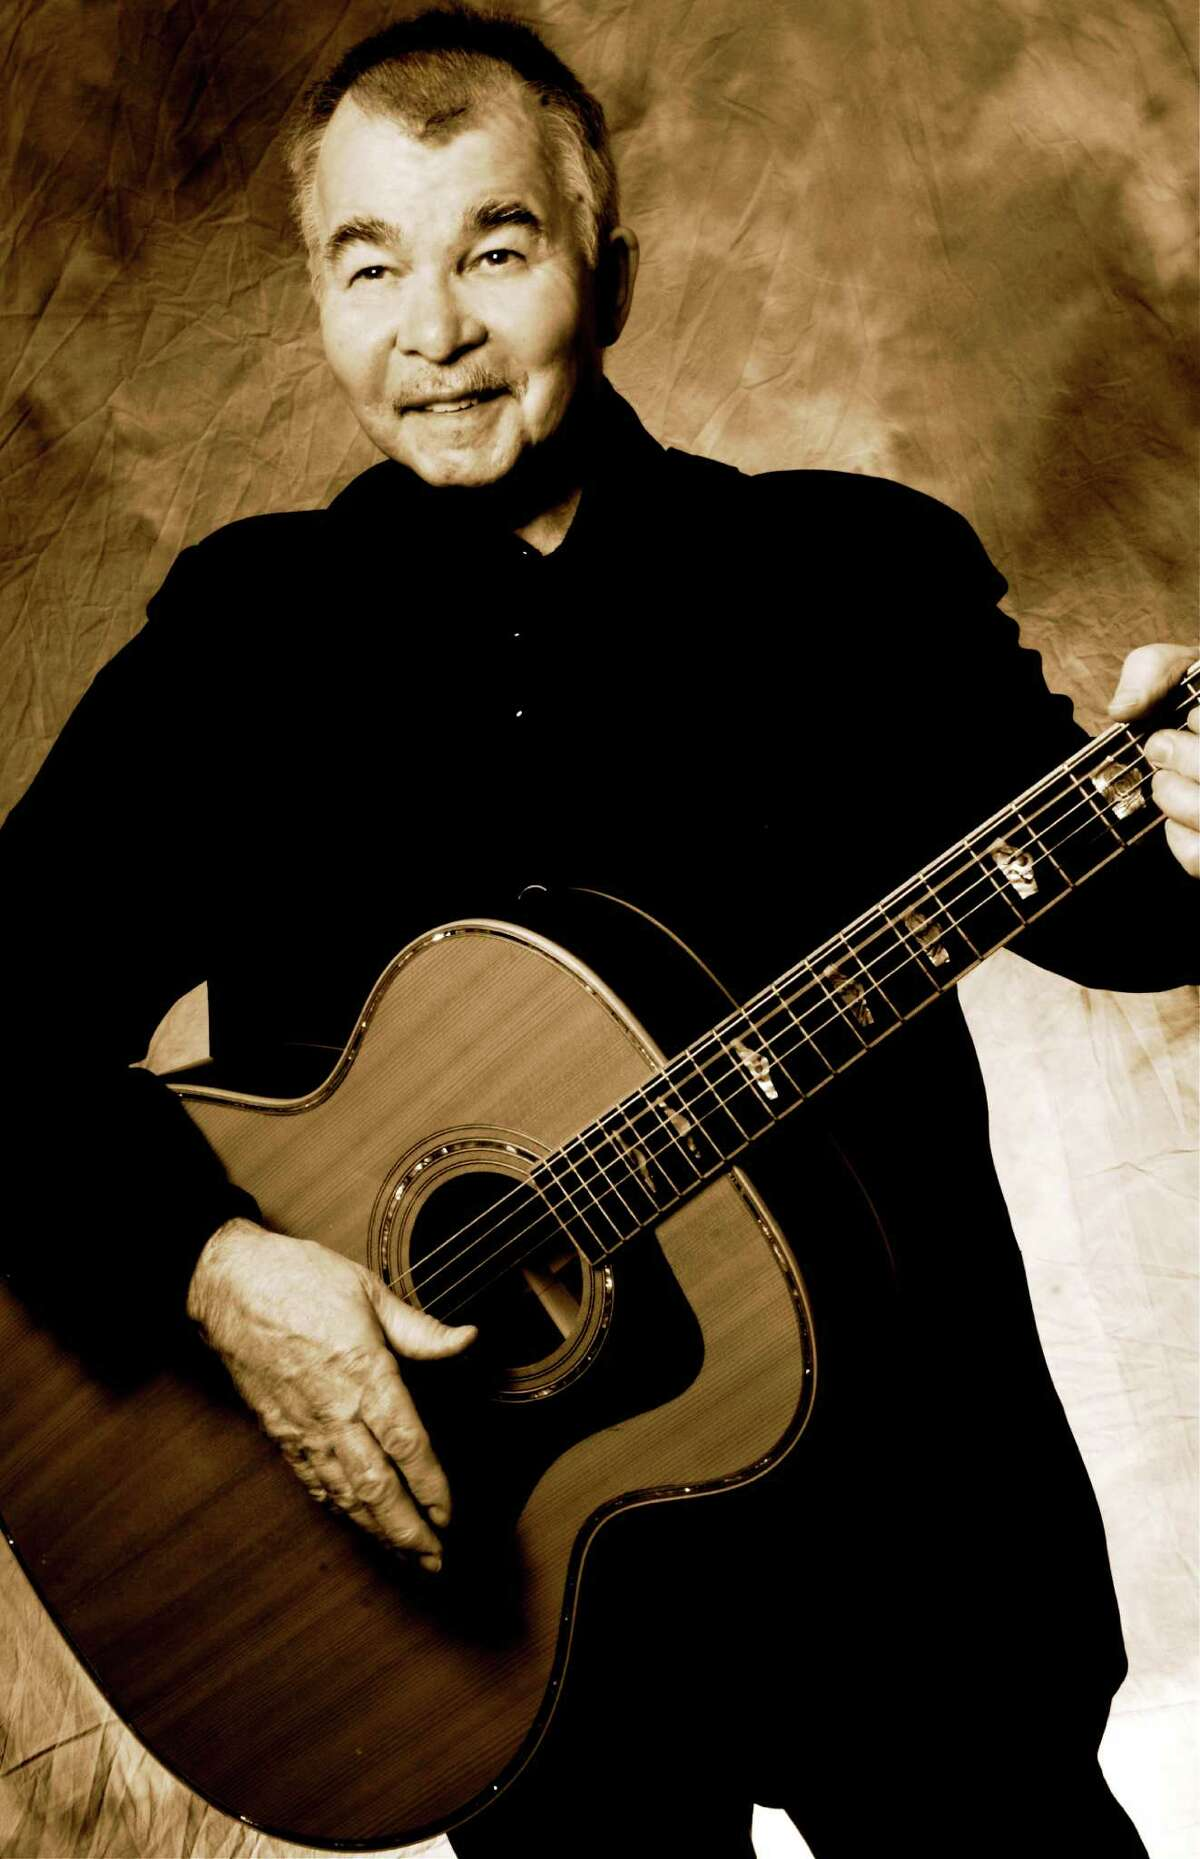 Legendary singer-songwriter John Prine